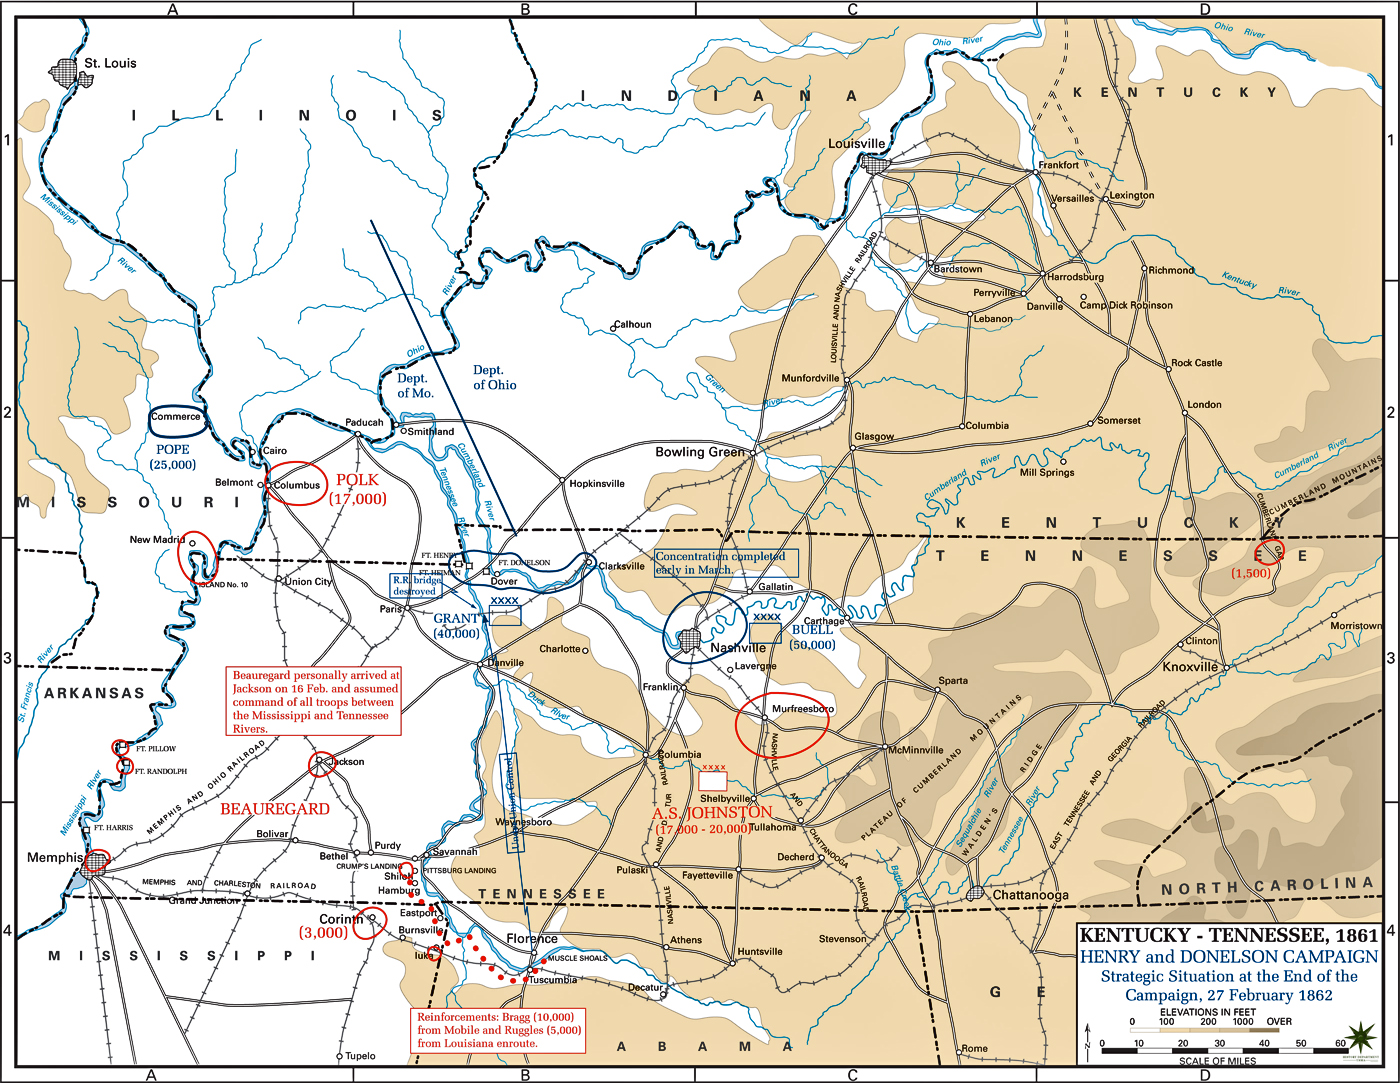 Map of the Henry and Donelson Campaign: February 27, 1862